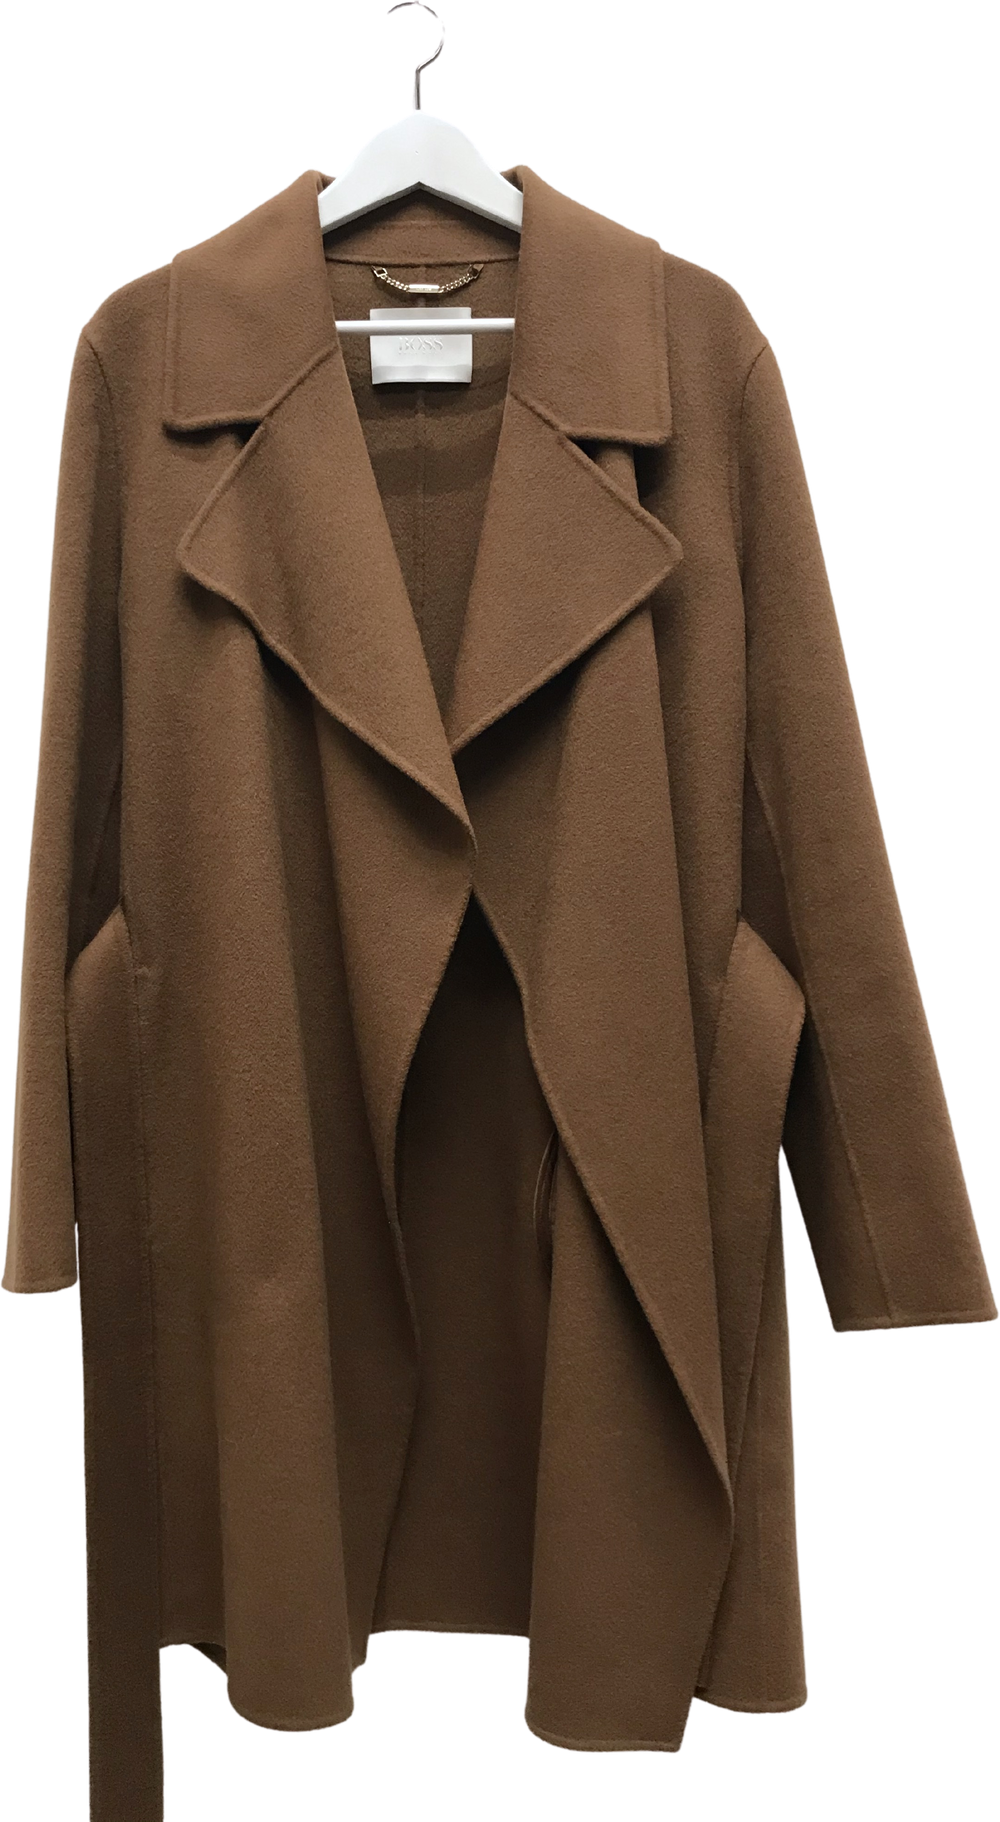 Tan Cashmere Mix Hugo Boss Coat  Size L/XL